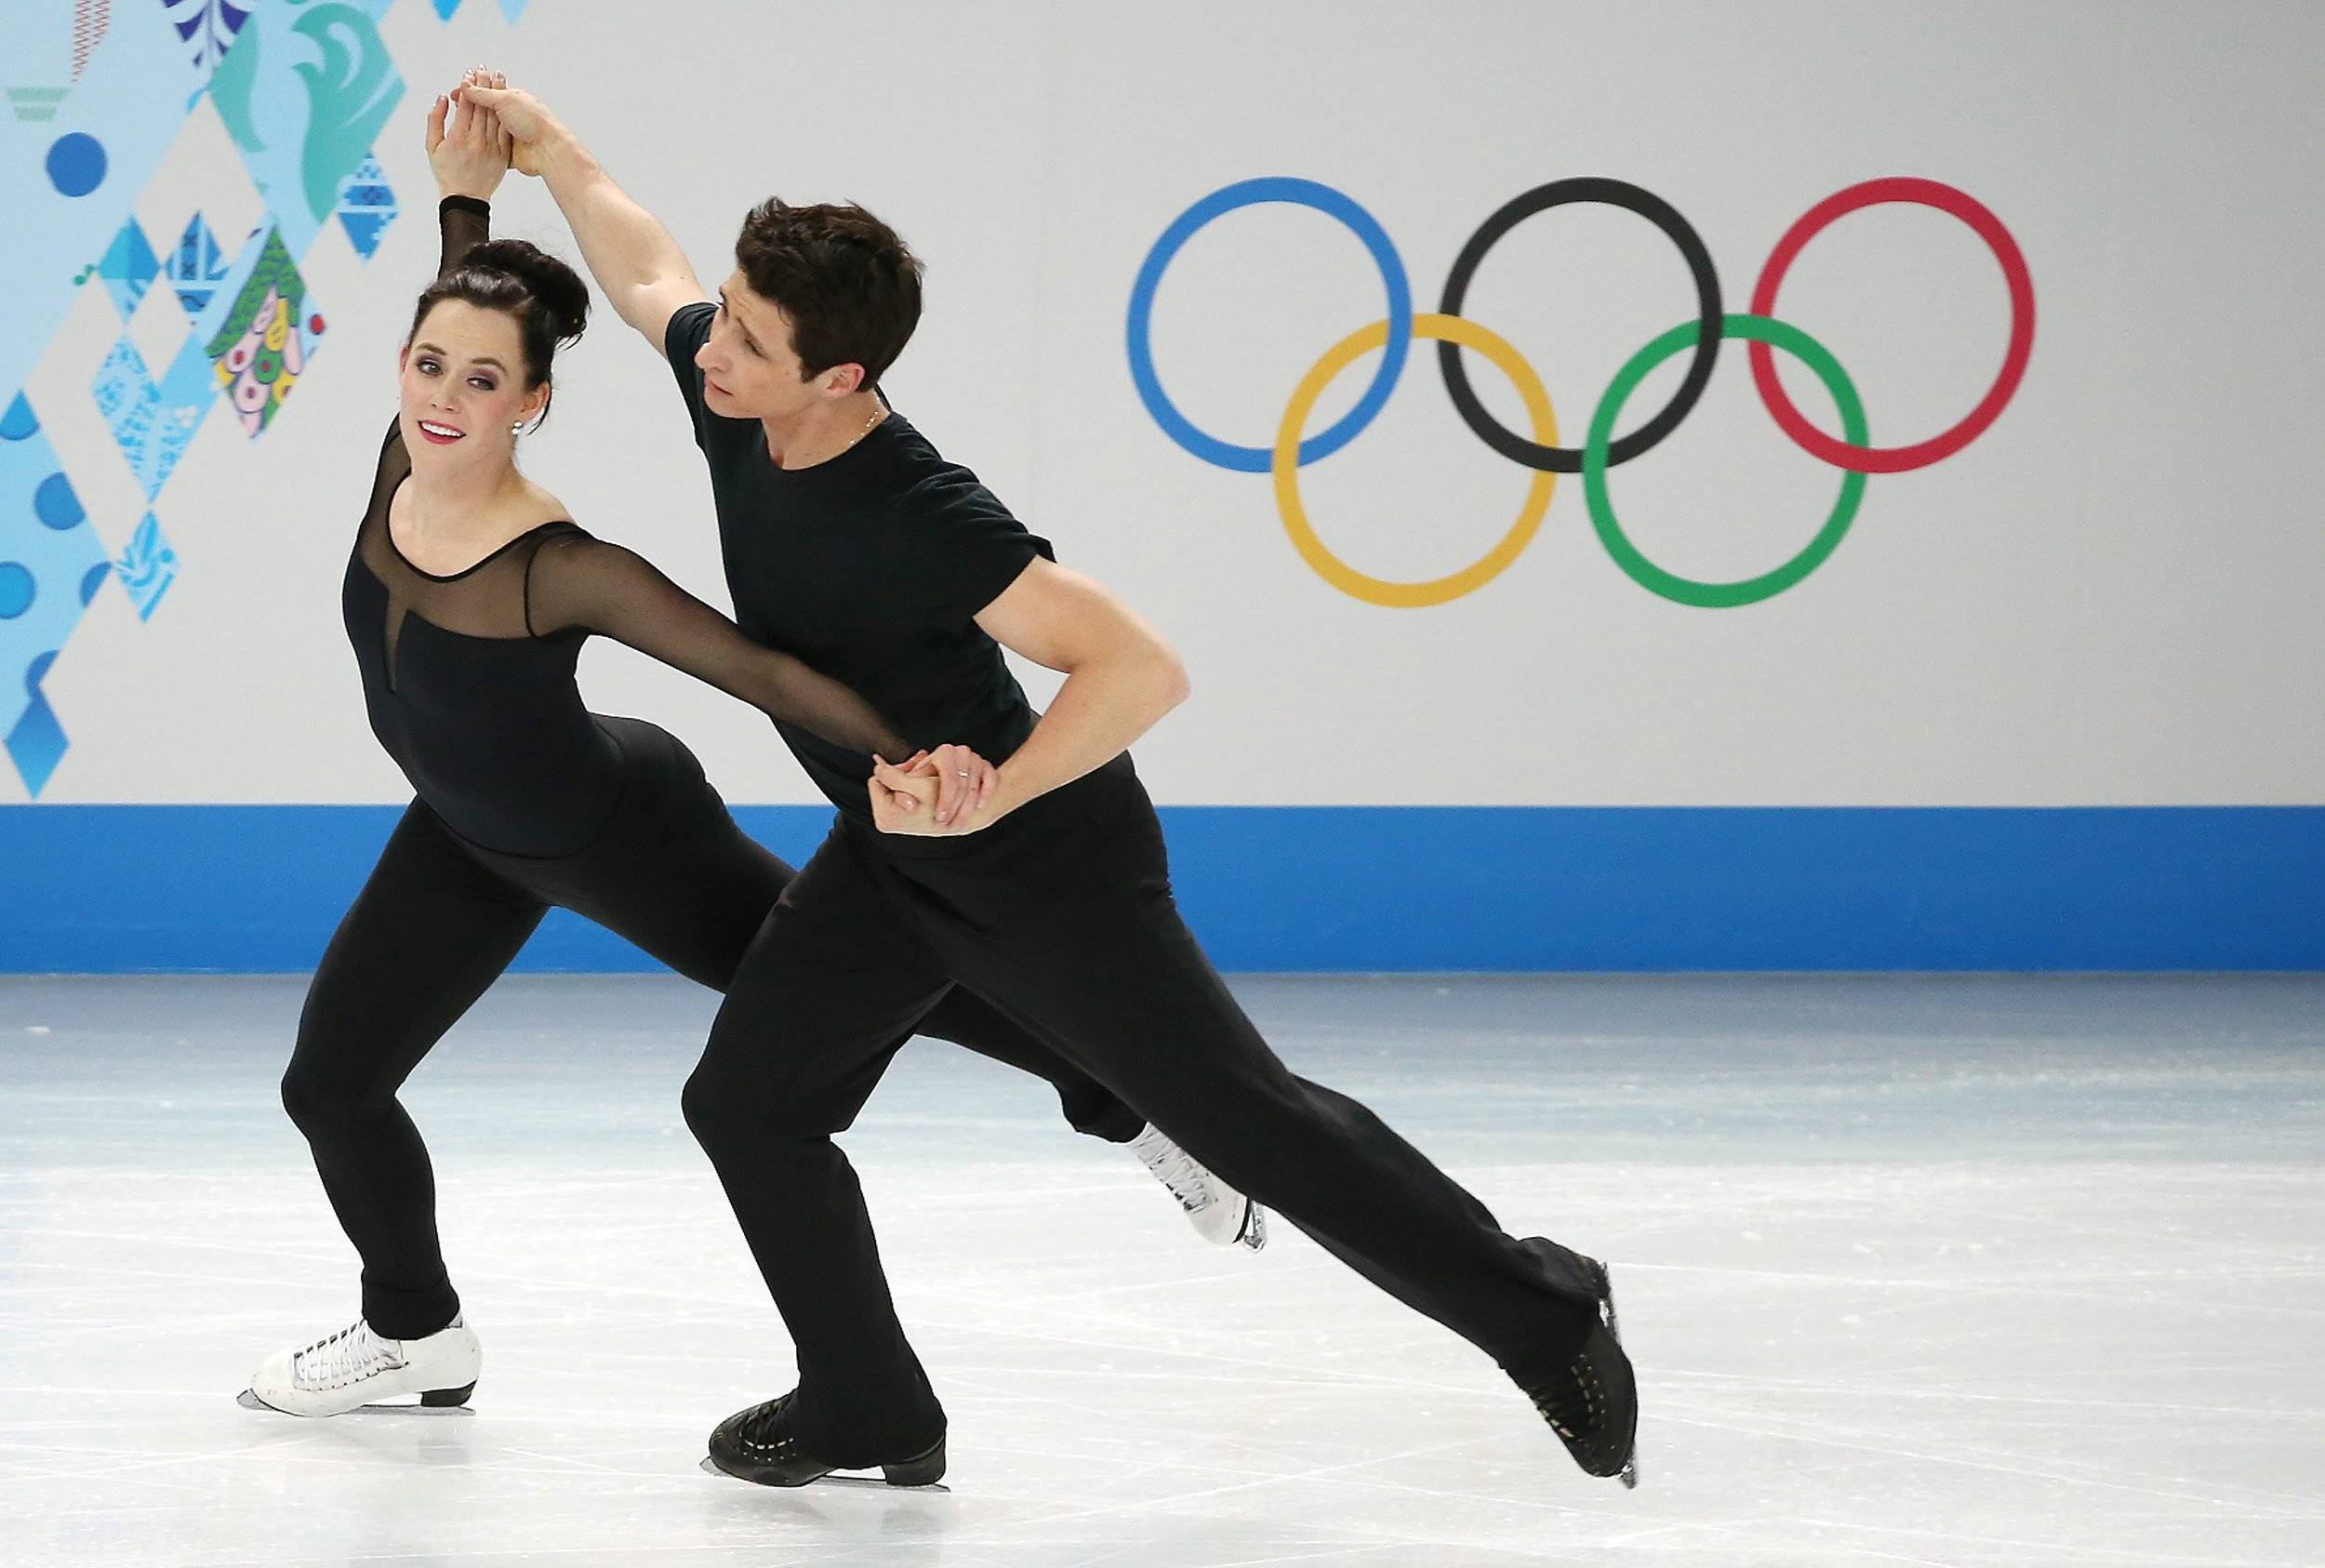 Figure Skating Results at the Olympics 2014